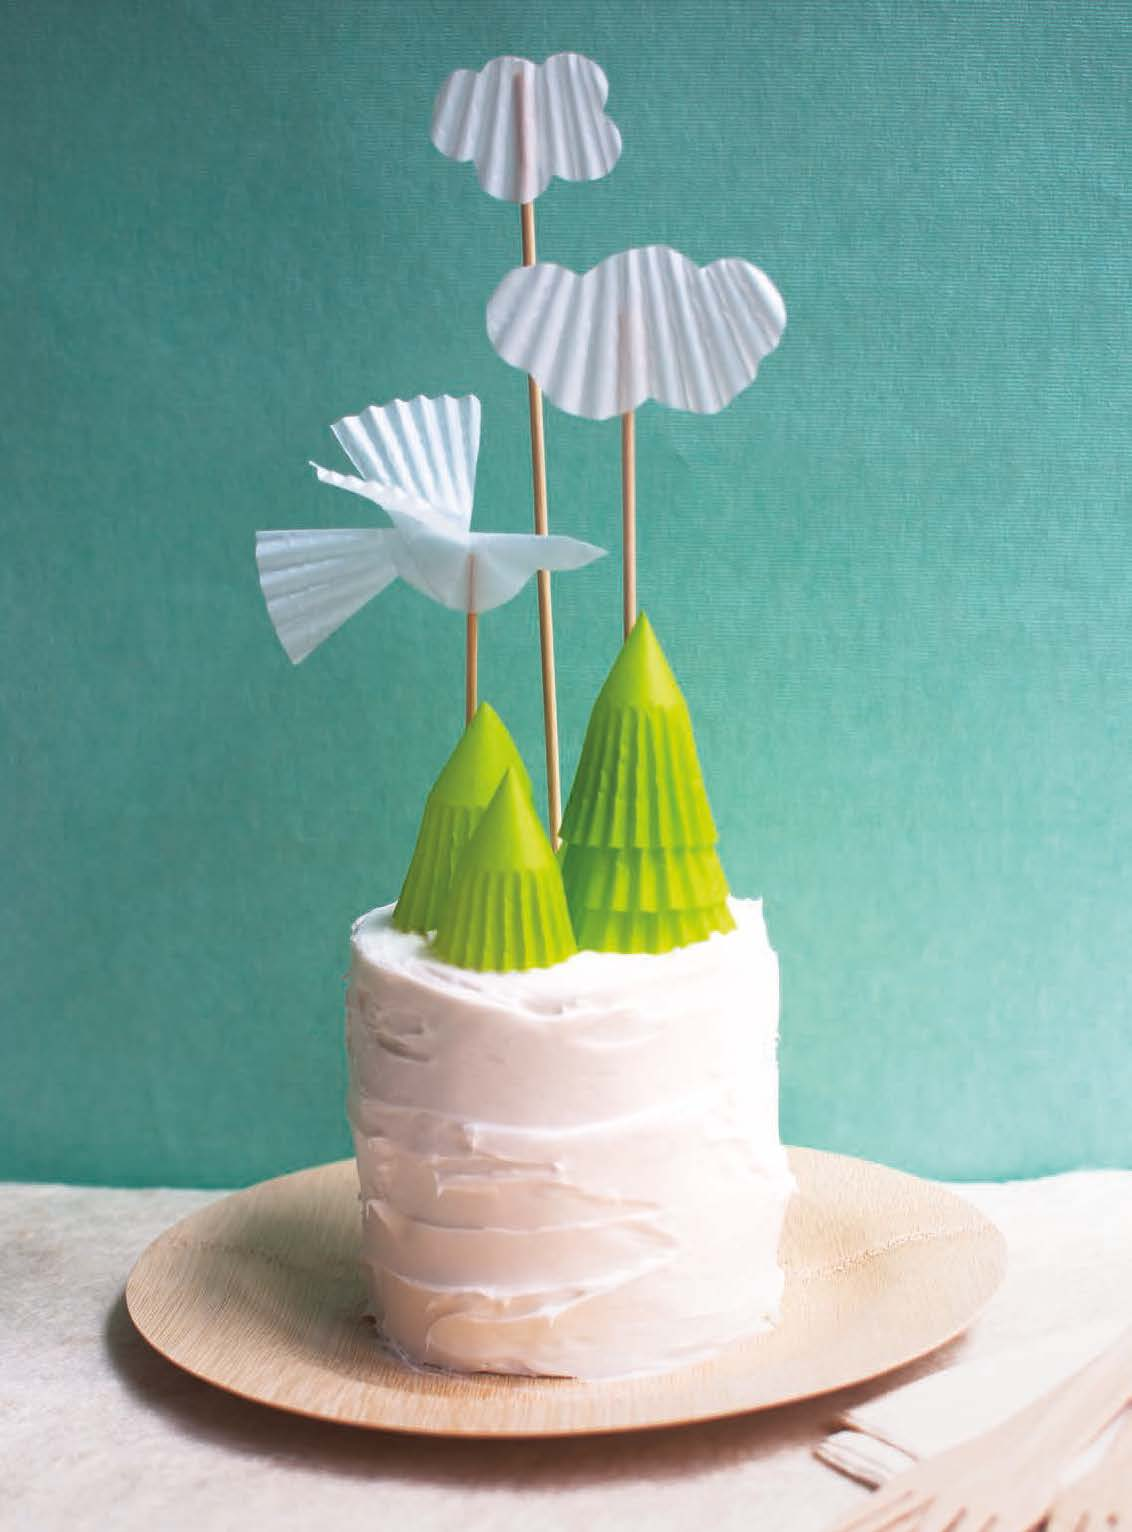 Paper-Goods-Projects-Cloud-Cake